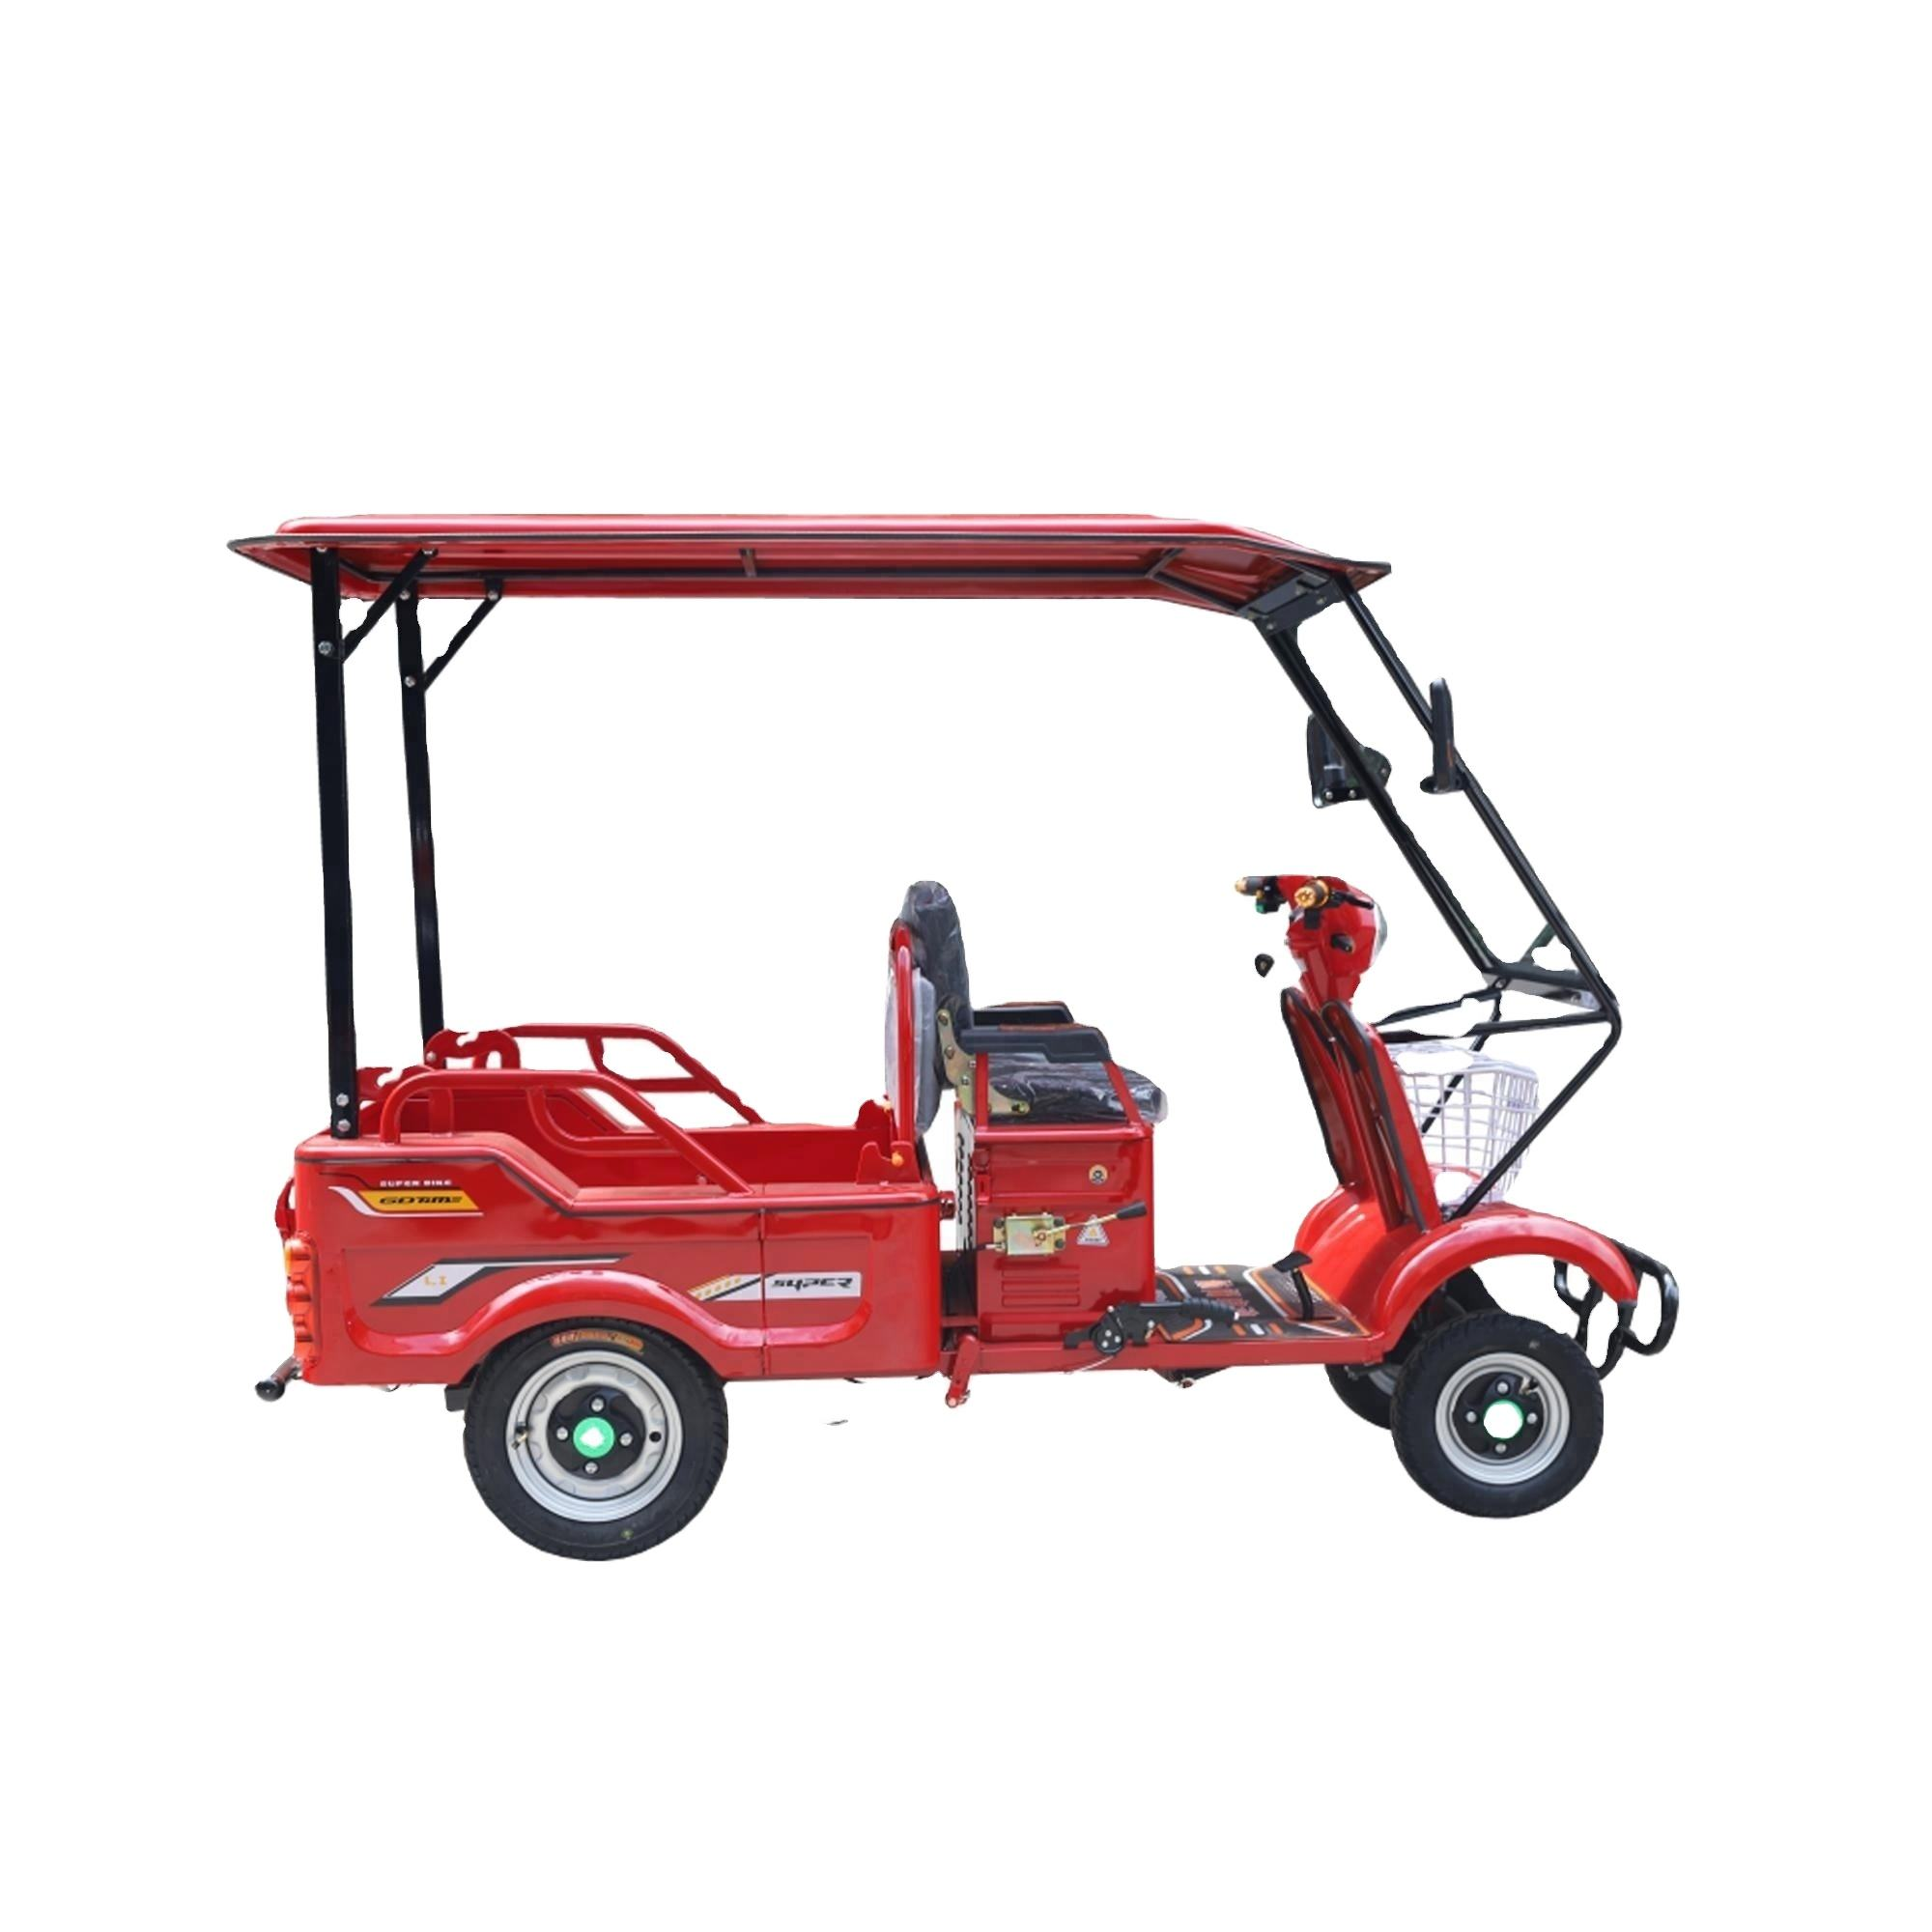 2020 New Electric Golf Car, Cheap Electric Golf Cart For Sale In Europe-Golf/passenger and cargo combination for farm